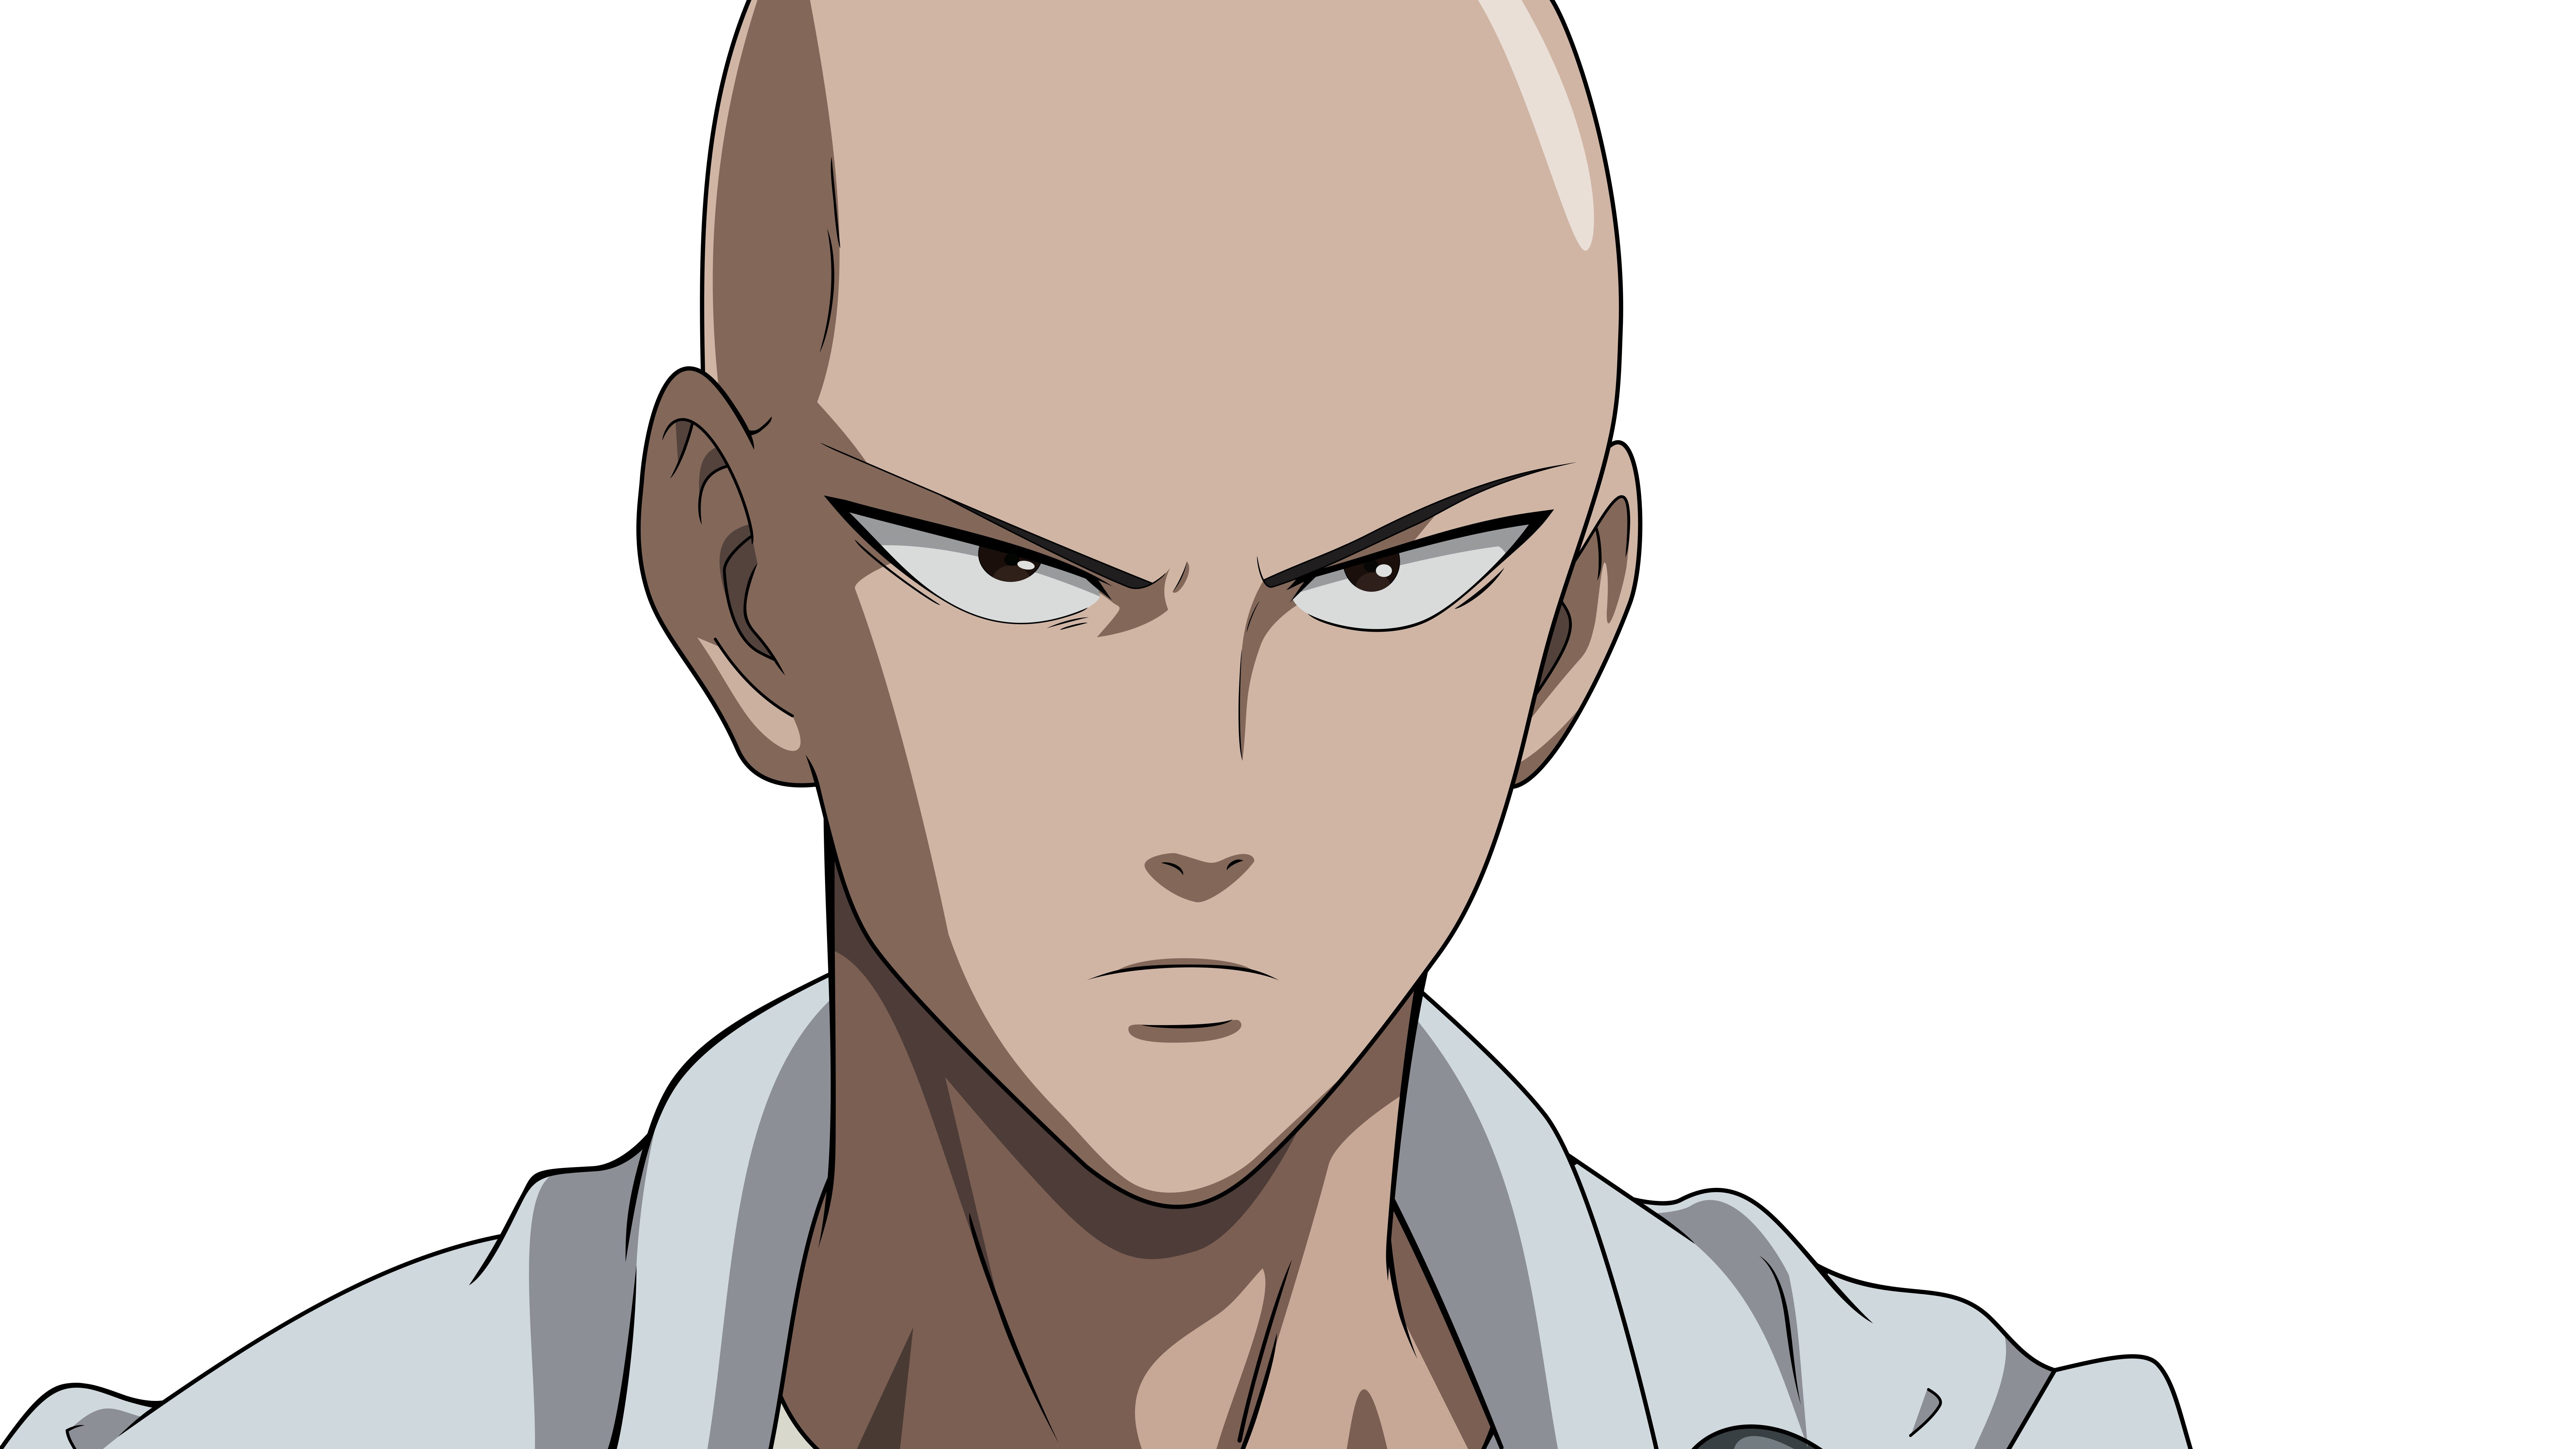 one punch man wallpaper 1080p high quality (Gable Butler